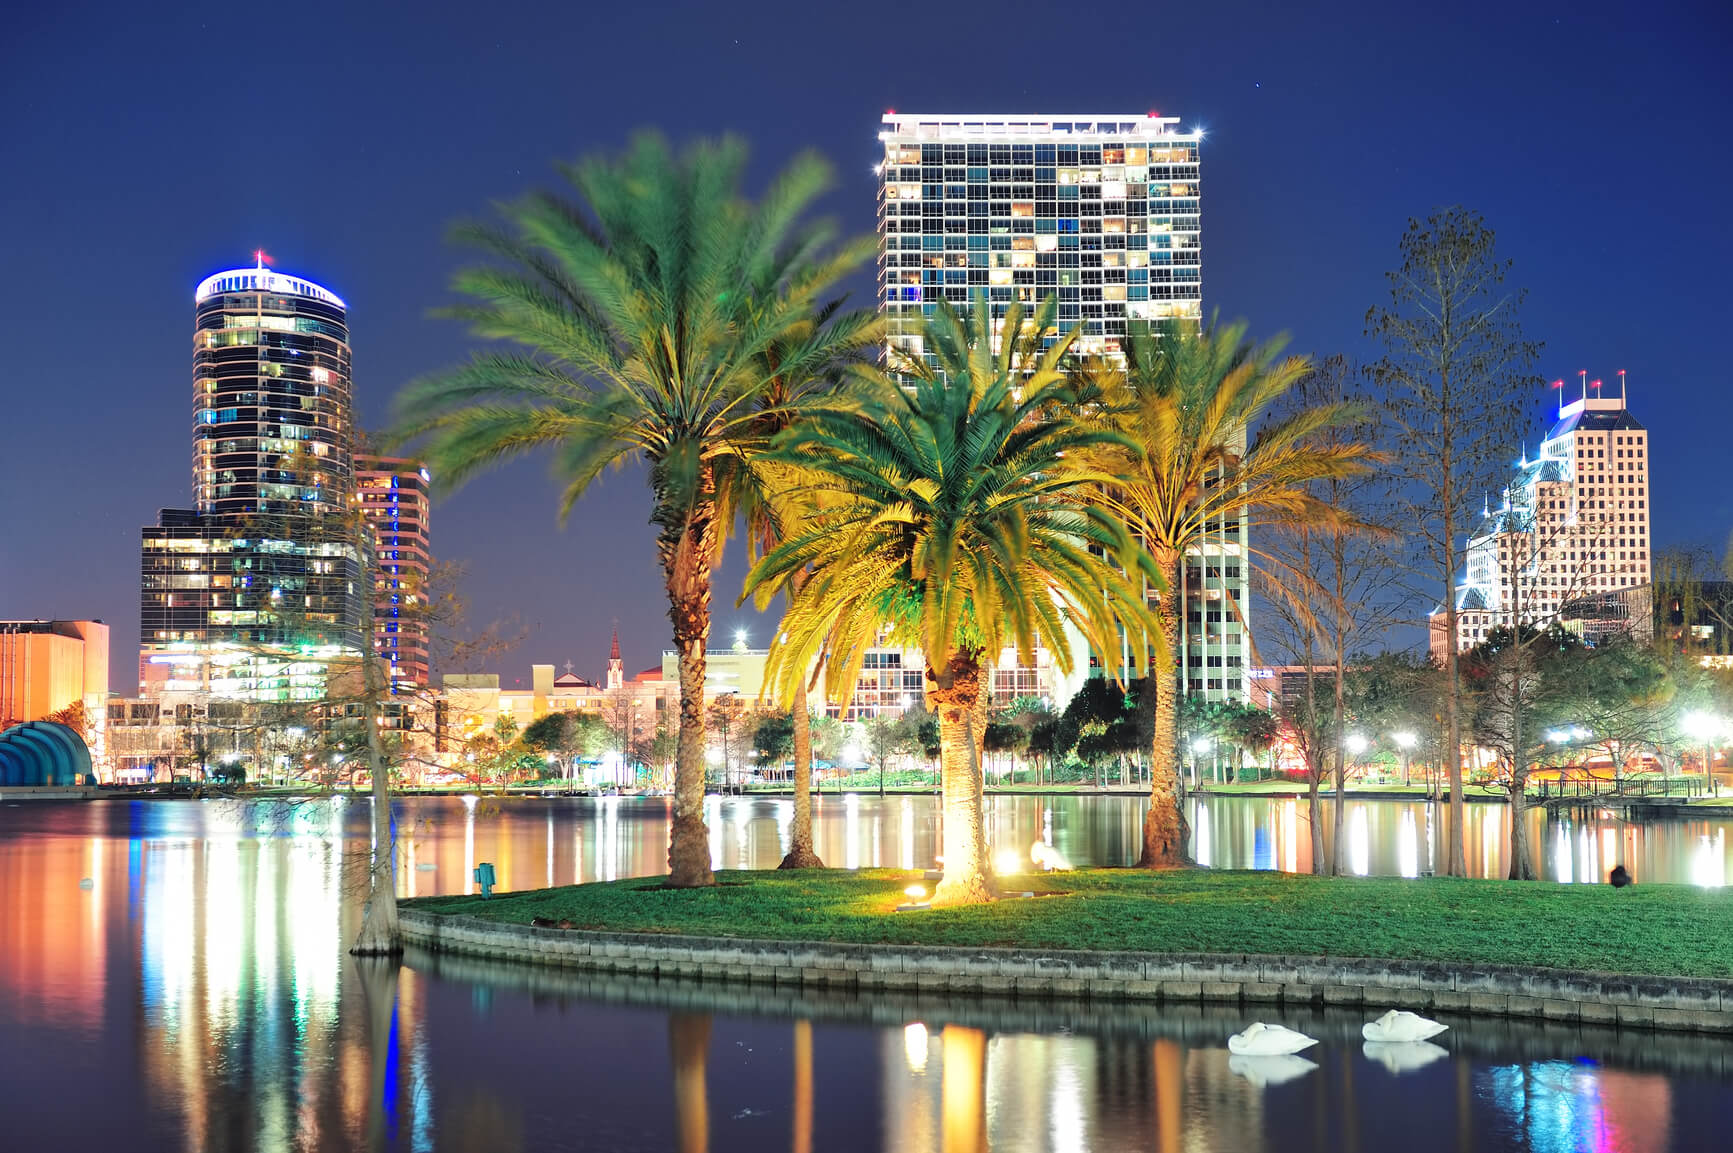 🔥 XMAS & NEW YEAR: Non-stop from Philadelphia to Orlando, Florida (& vice versa) for only $38 roundtrip (Sep-Feb dates)